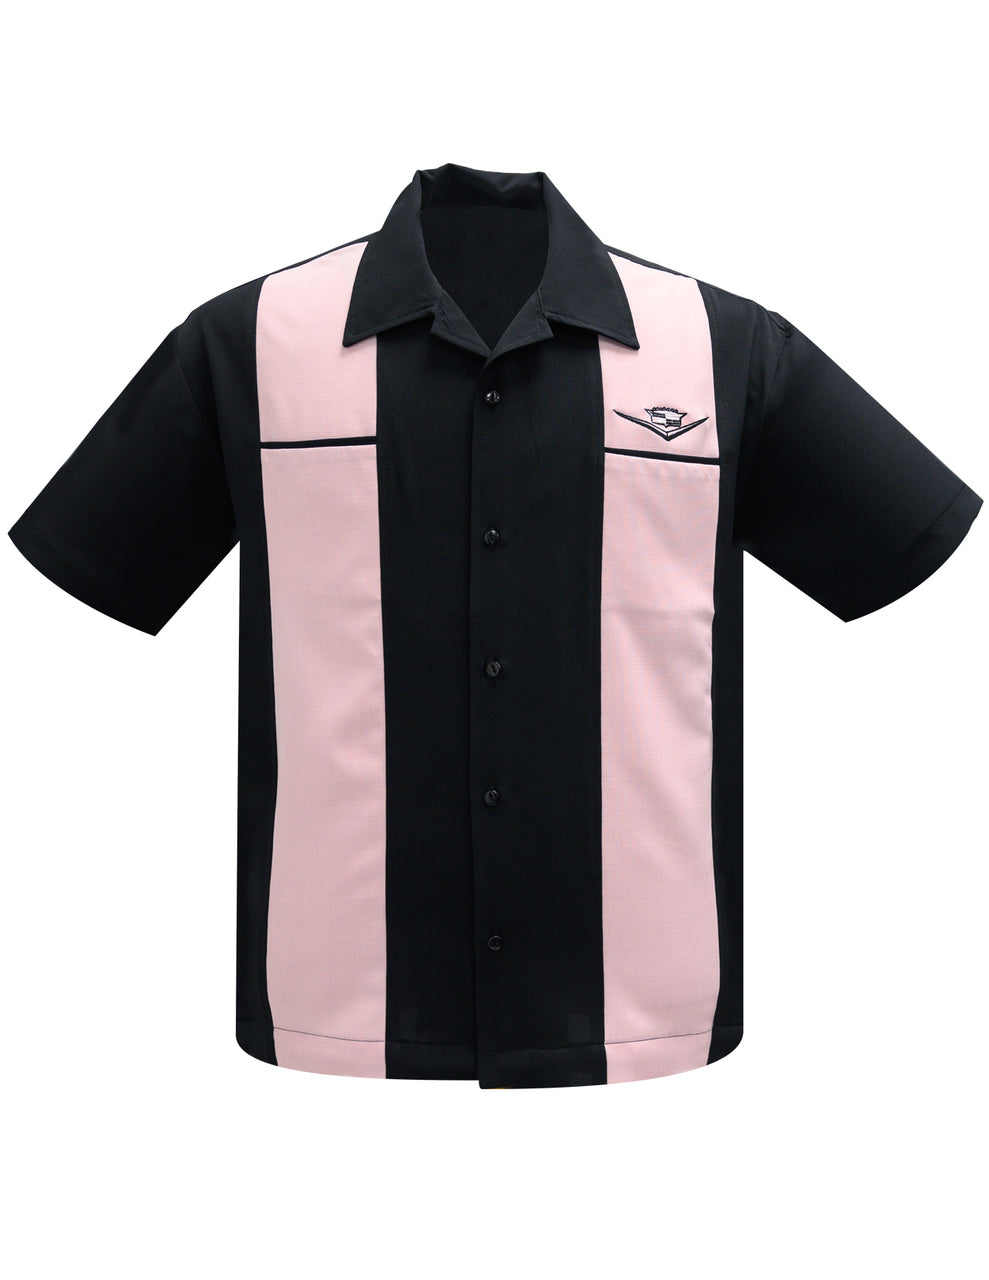 Steady Clothing Classic Cruise Black Pink Panel Cadillac Bowling Lounge Shirt